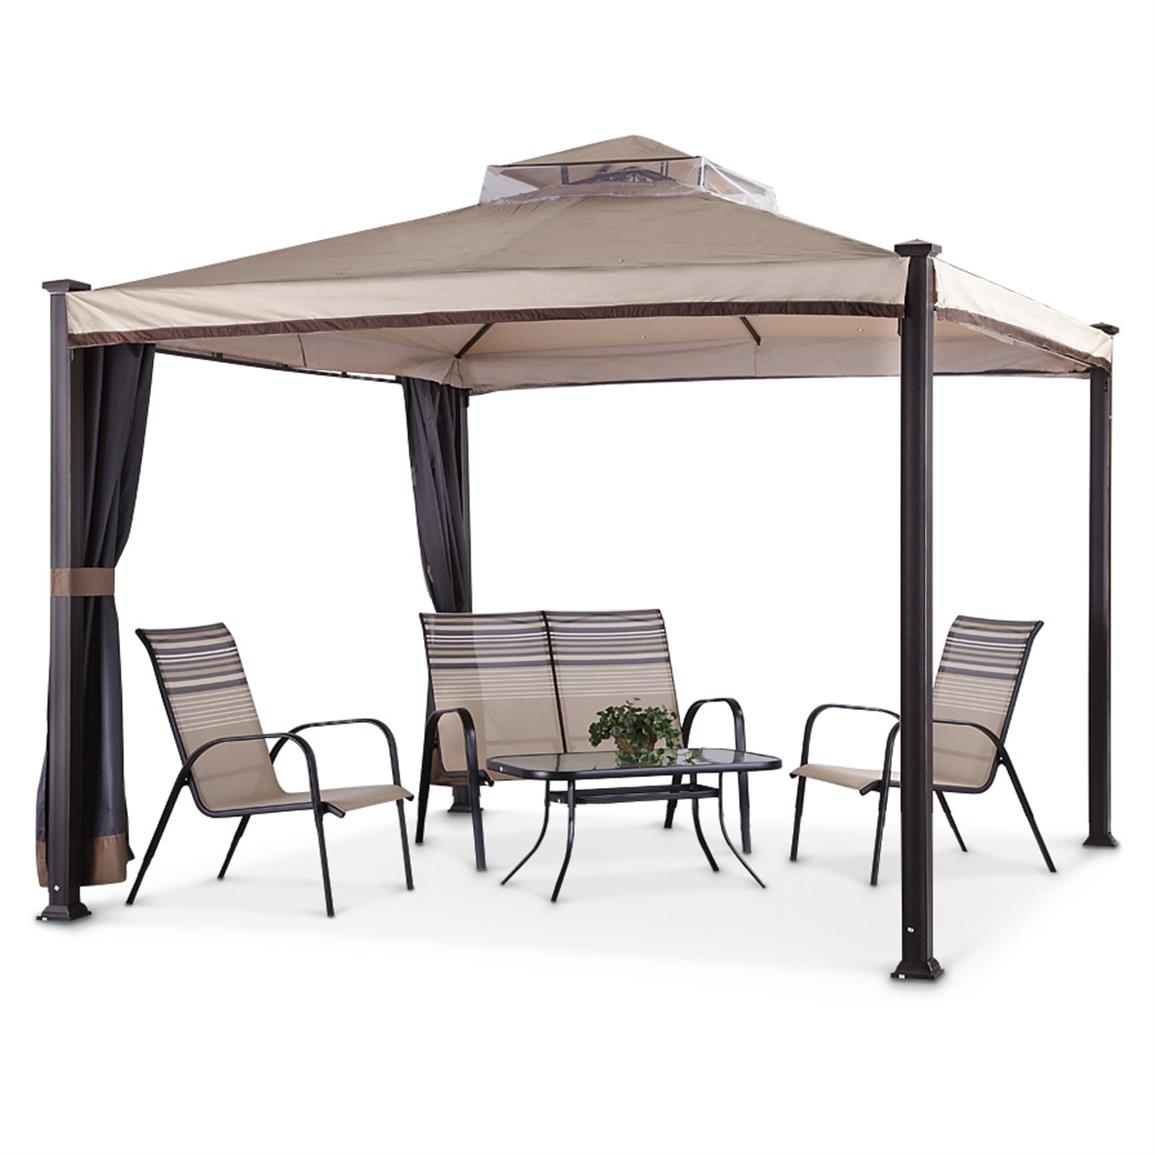 10x10 Gazebo you can look portable gazebo you can look small gazebo you can look wooden gazebo